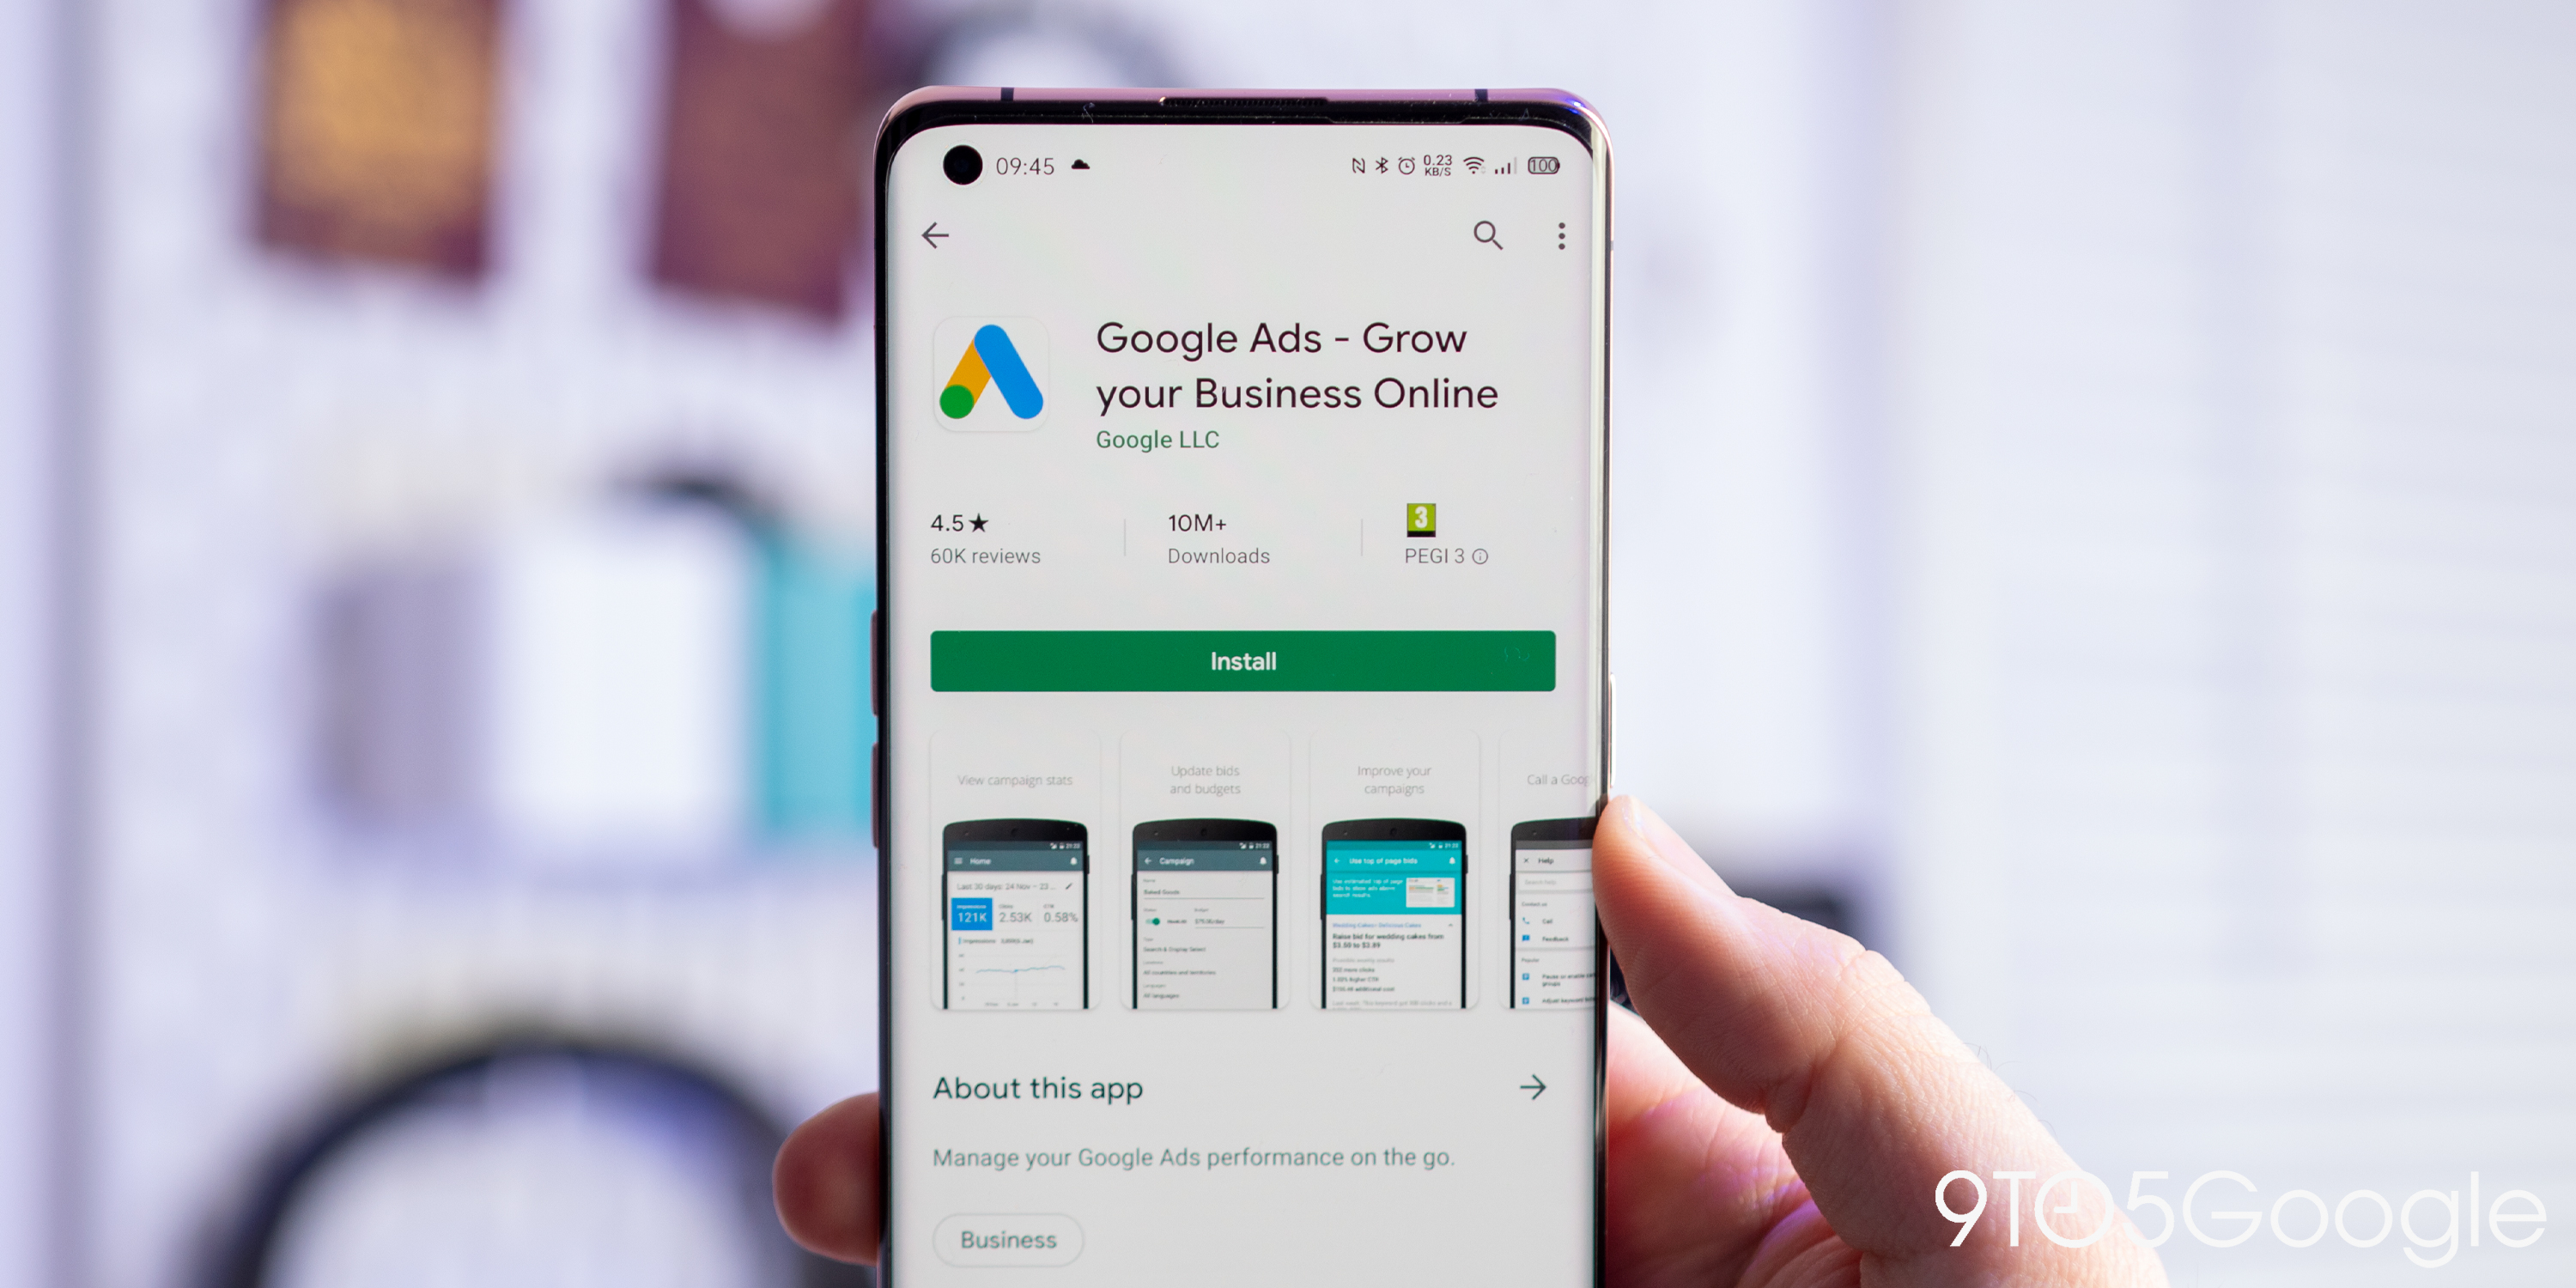 Google Ads app gains a dedicated dark mode on Android - 9to5Google